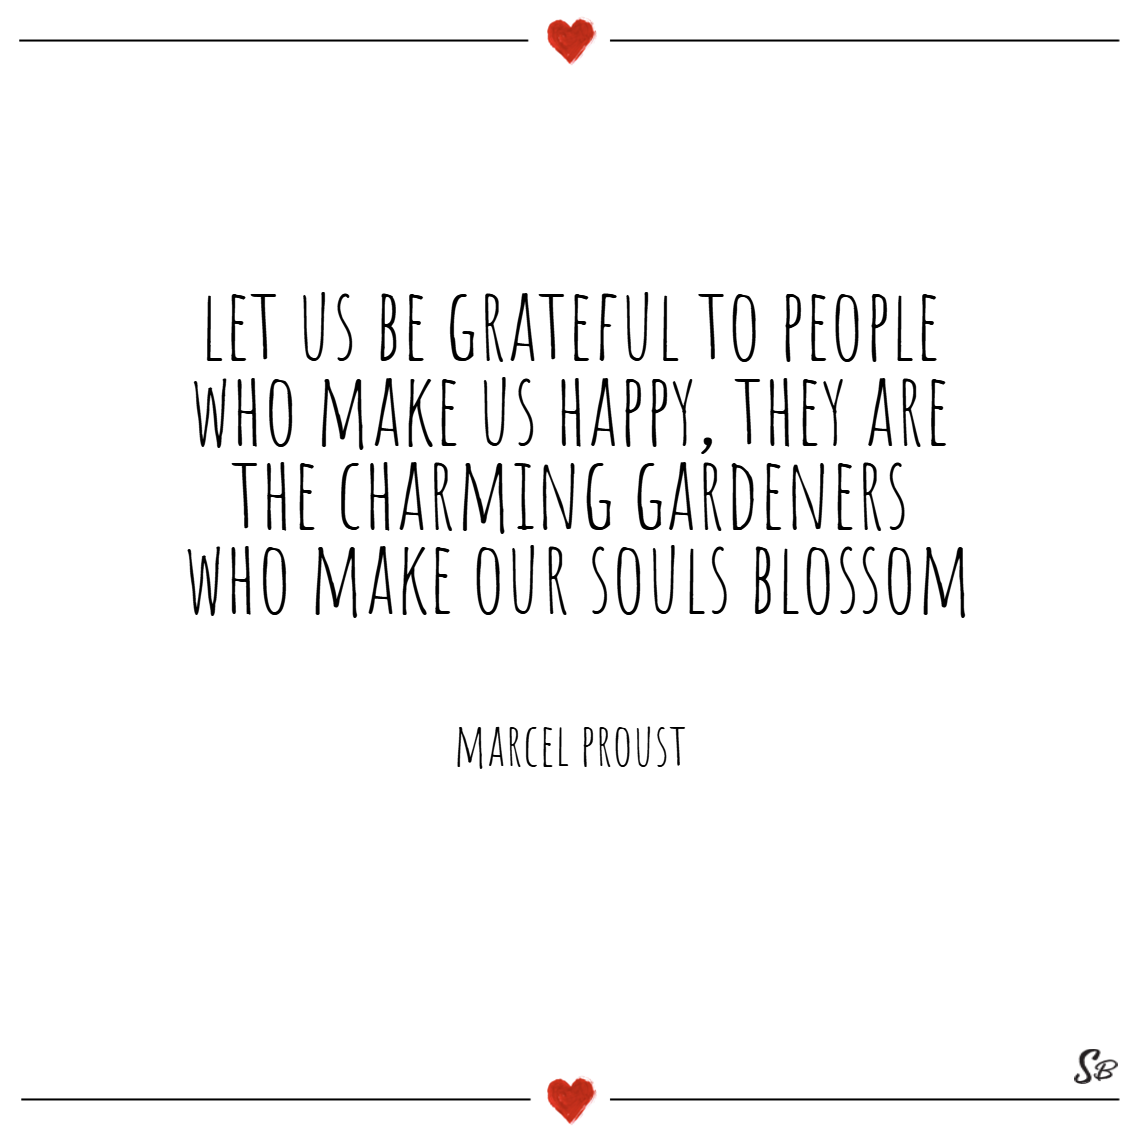 Let us be grateful to people who make us happy, they are the charming gardeners who make our souls blossom. – marcel proust